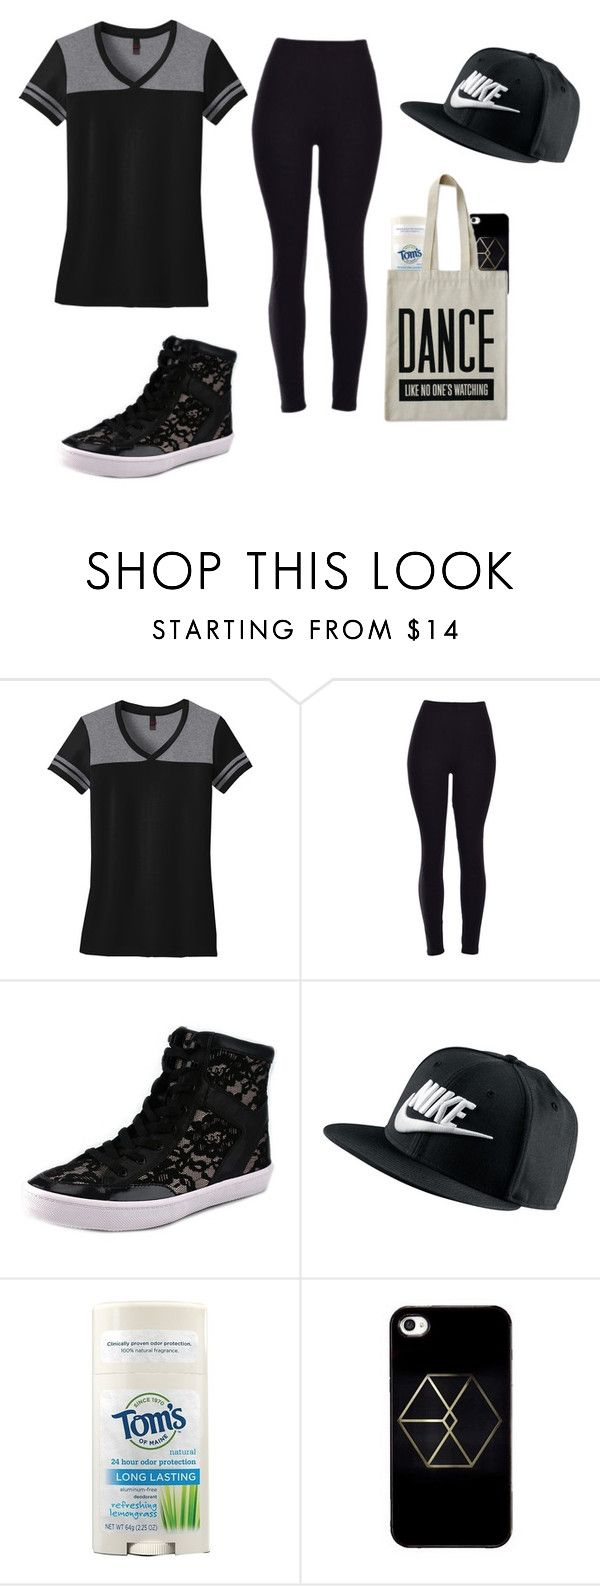 """""""My First Hip-Hop Dance Class Was Today!"""" by aspenrose321 ❤ liked on Polyvore featuring Rebecca Minkoff, NIKE, ALPHABET BAGS, women's clothing, women's fashion, women, female, woman, misses and juniors"""